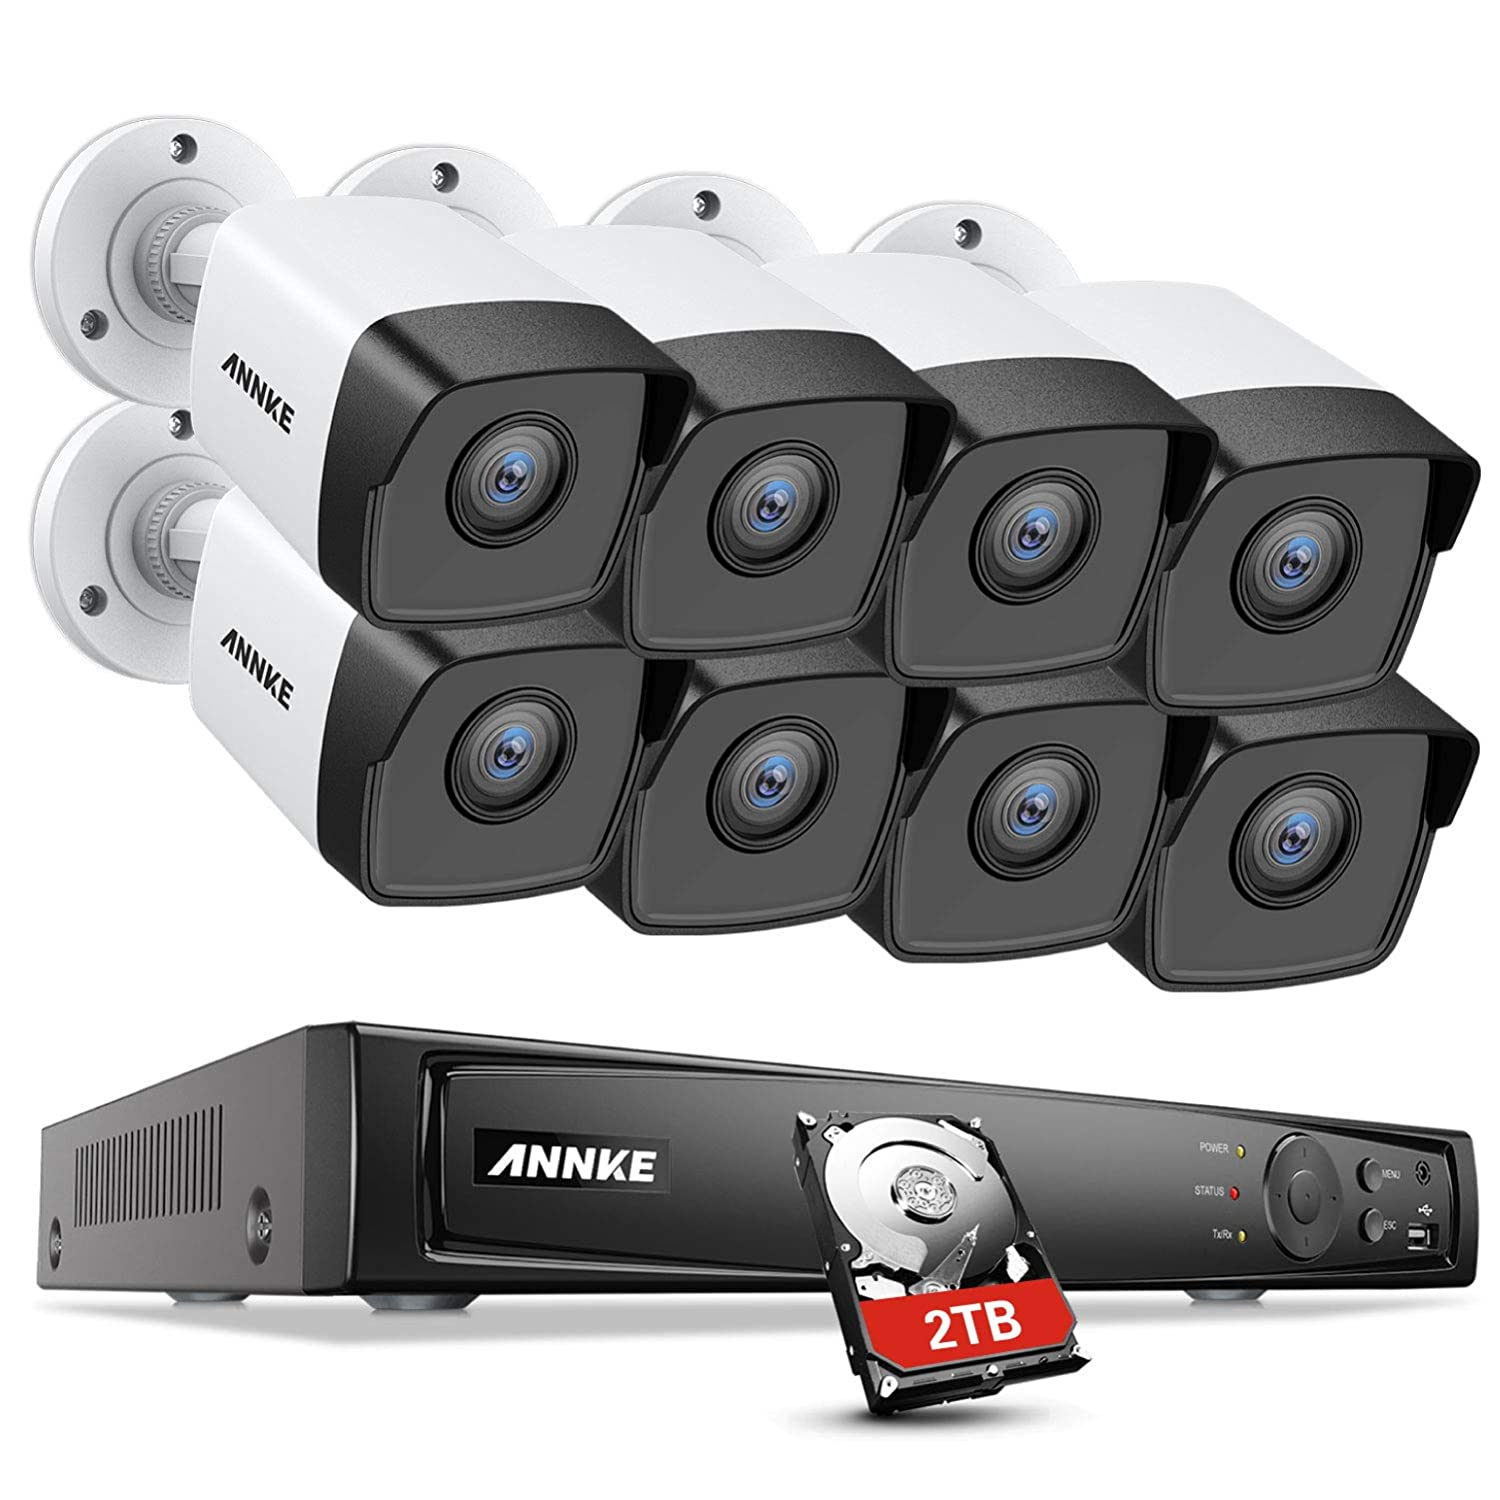 Remote Access ANNKE Security CCTV Camera System 8-Channel Ultra HD 4K H.265+ DVR with 2TB Hard Drive and 8/×5MP HD IP67 Weatherproof Bullet Cameras Email Alert with Snapshots 100ft Night Vision